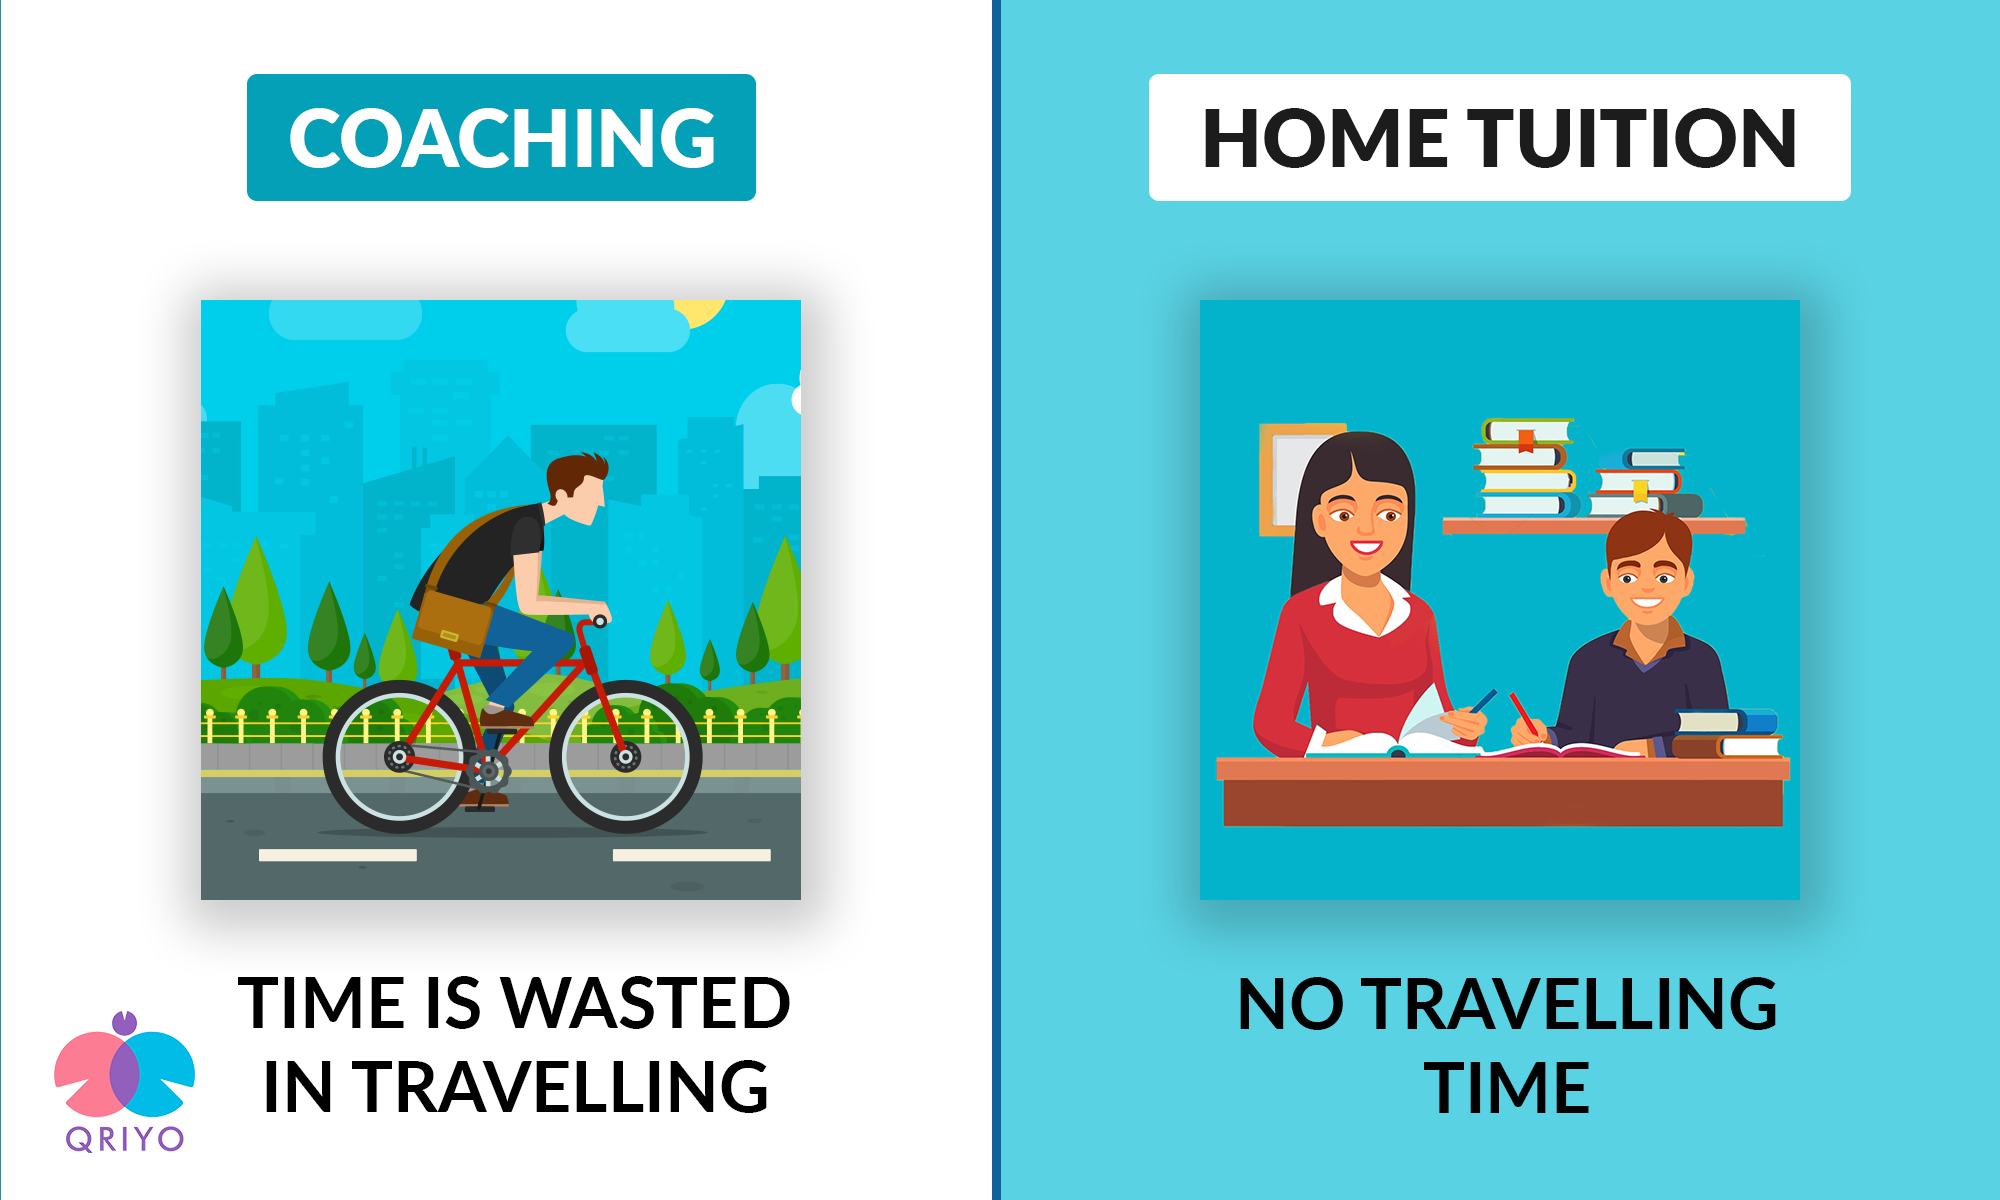 In home tuition teacher comes to your door, no time wasted.